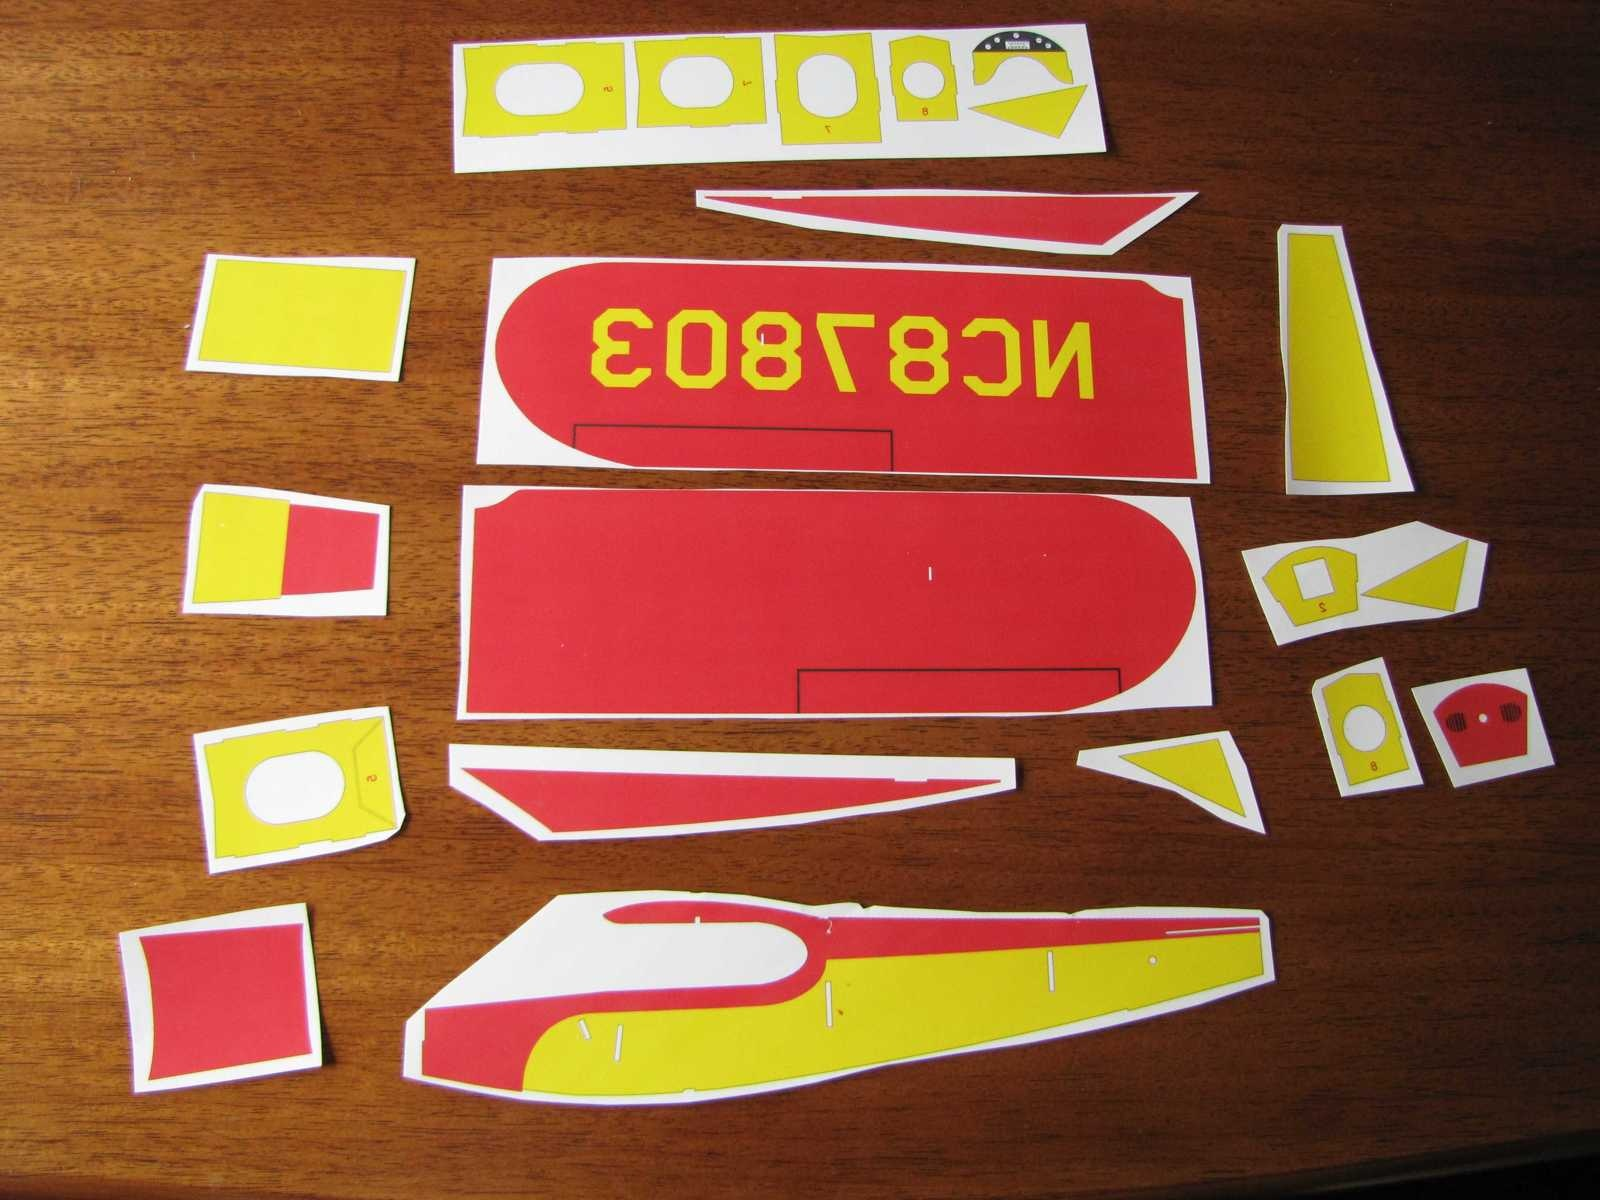 Depending on how you laid out your artwork to fit a letter size sheet, it may be necessary to cut the individual parts from the printed transfer paper. The parts do not need to be cut on the lines, just separated from the sheet of paper. If you had to break a part into sections, the sections can now be tapped together in preparation for transfer to the balsa sheet.